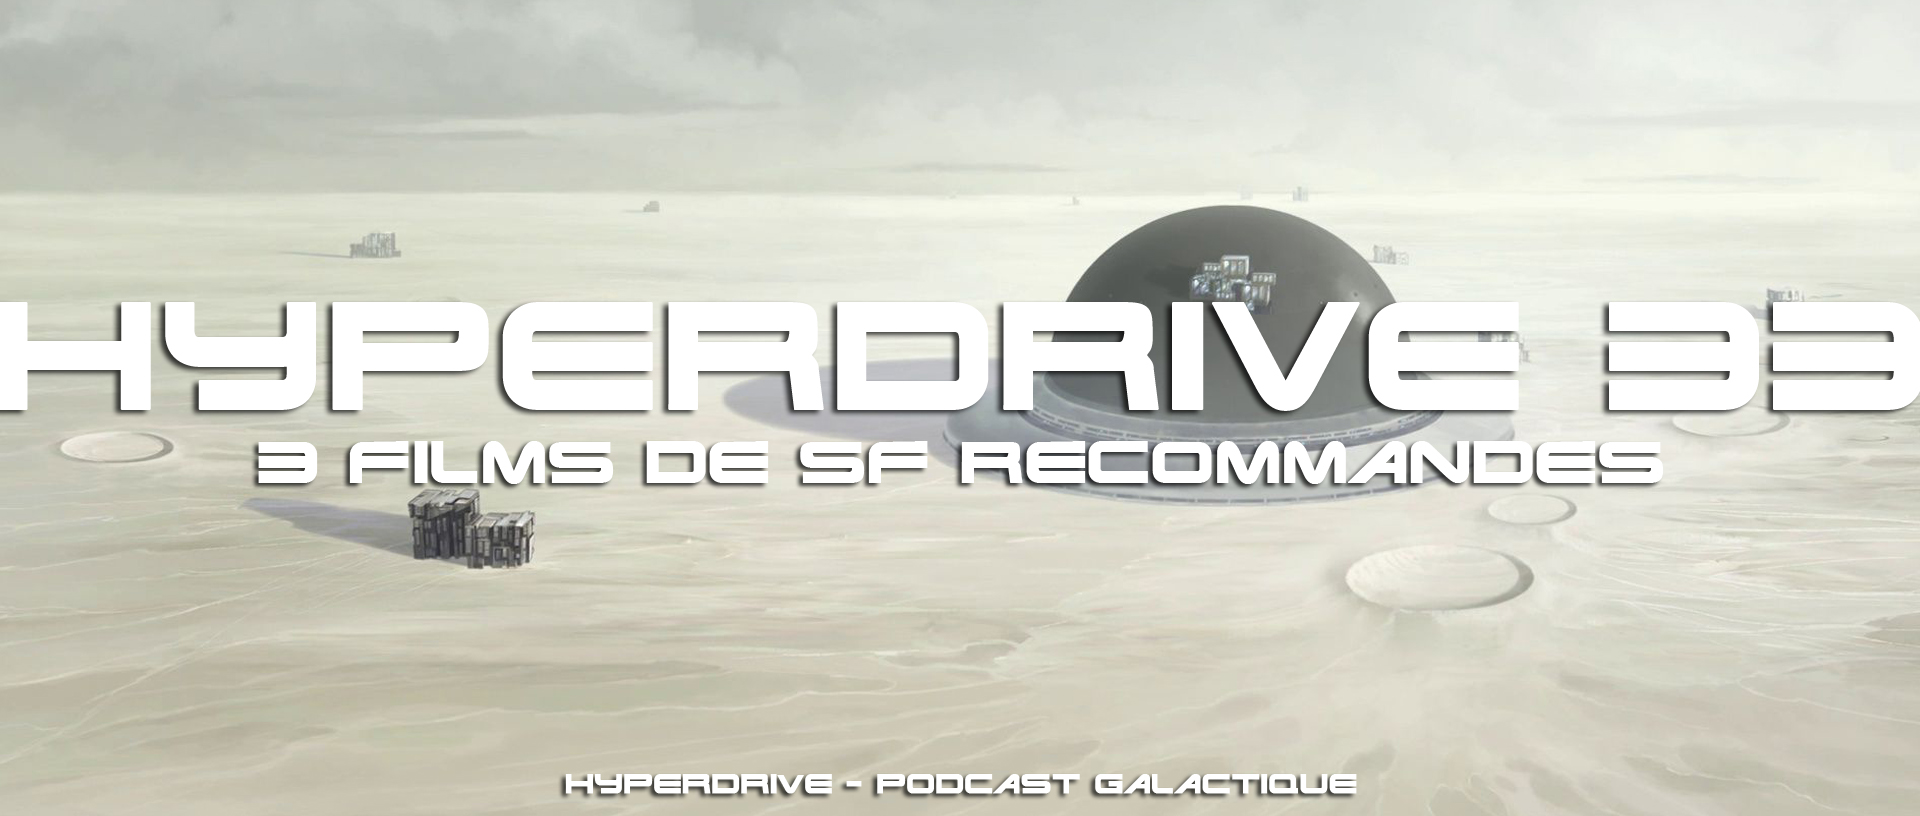 Podcast hyperdrive 33 - 3 films de SF recommandés